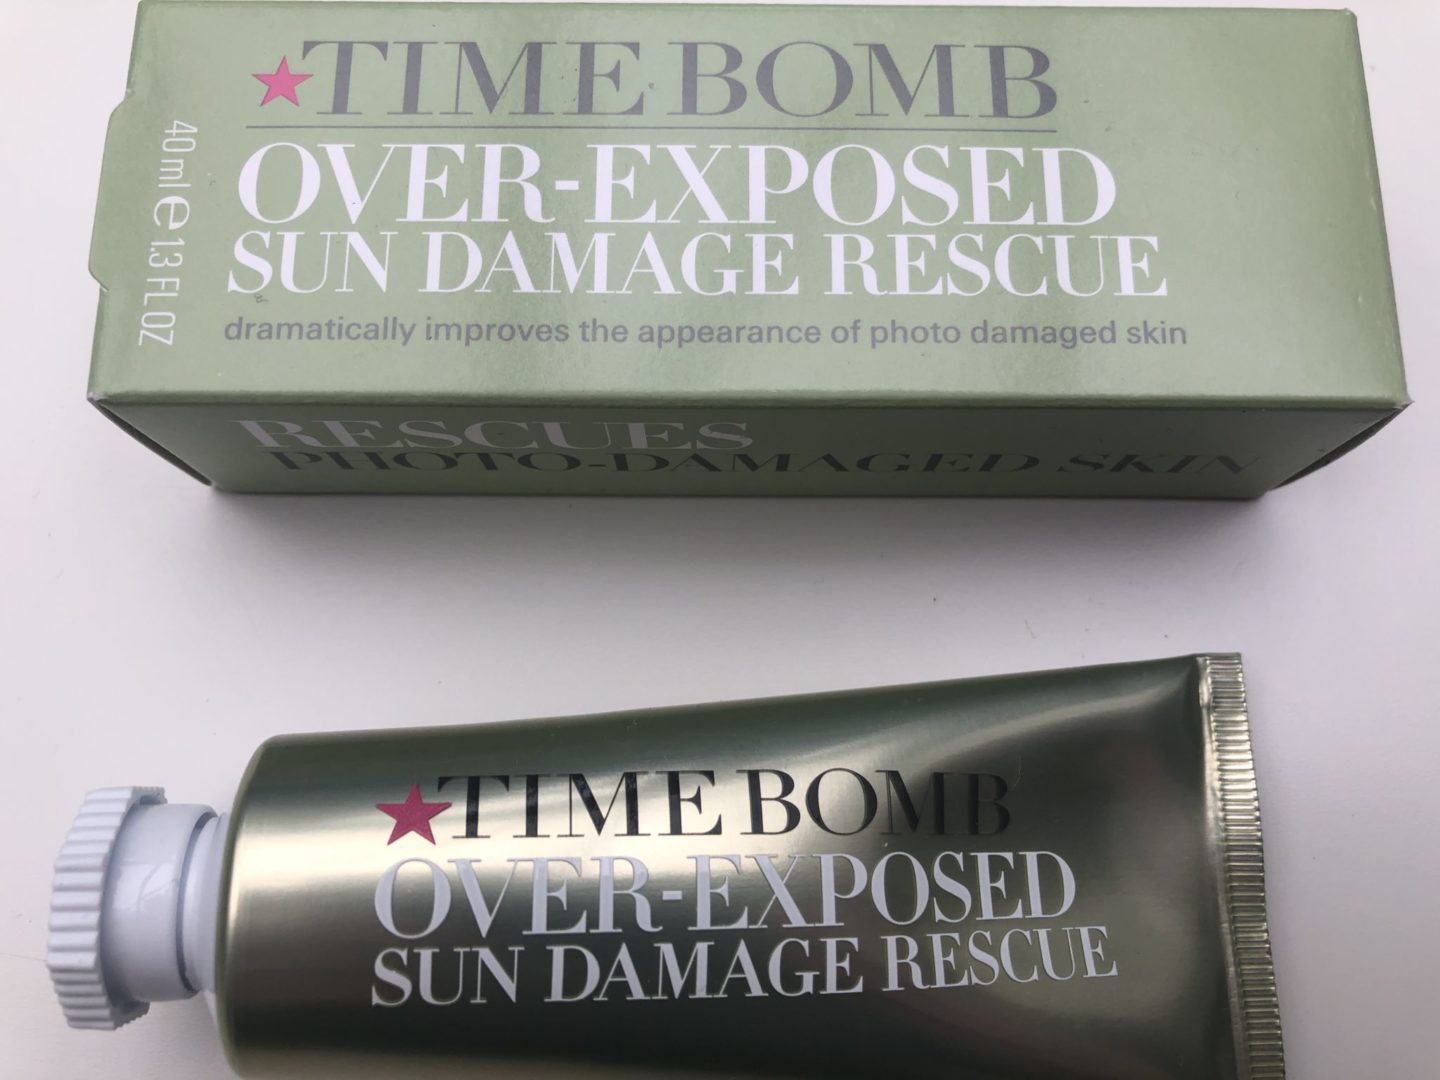 Time Bomb Over-Exposed Sun Damage Rescue